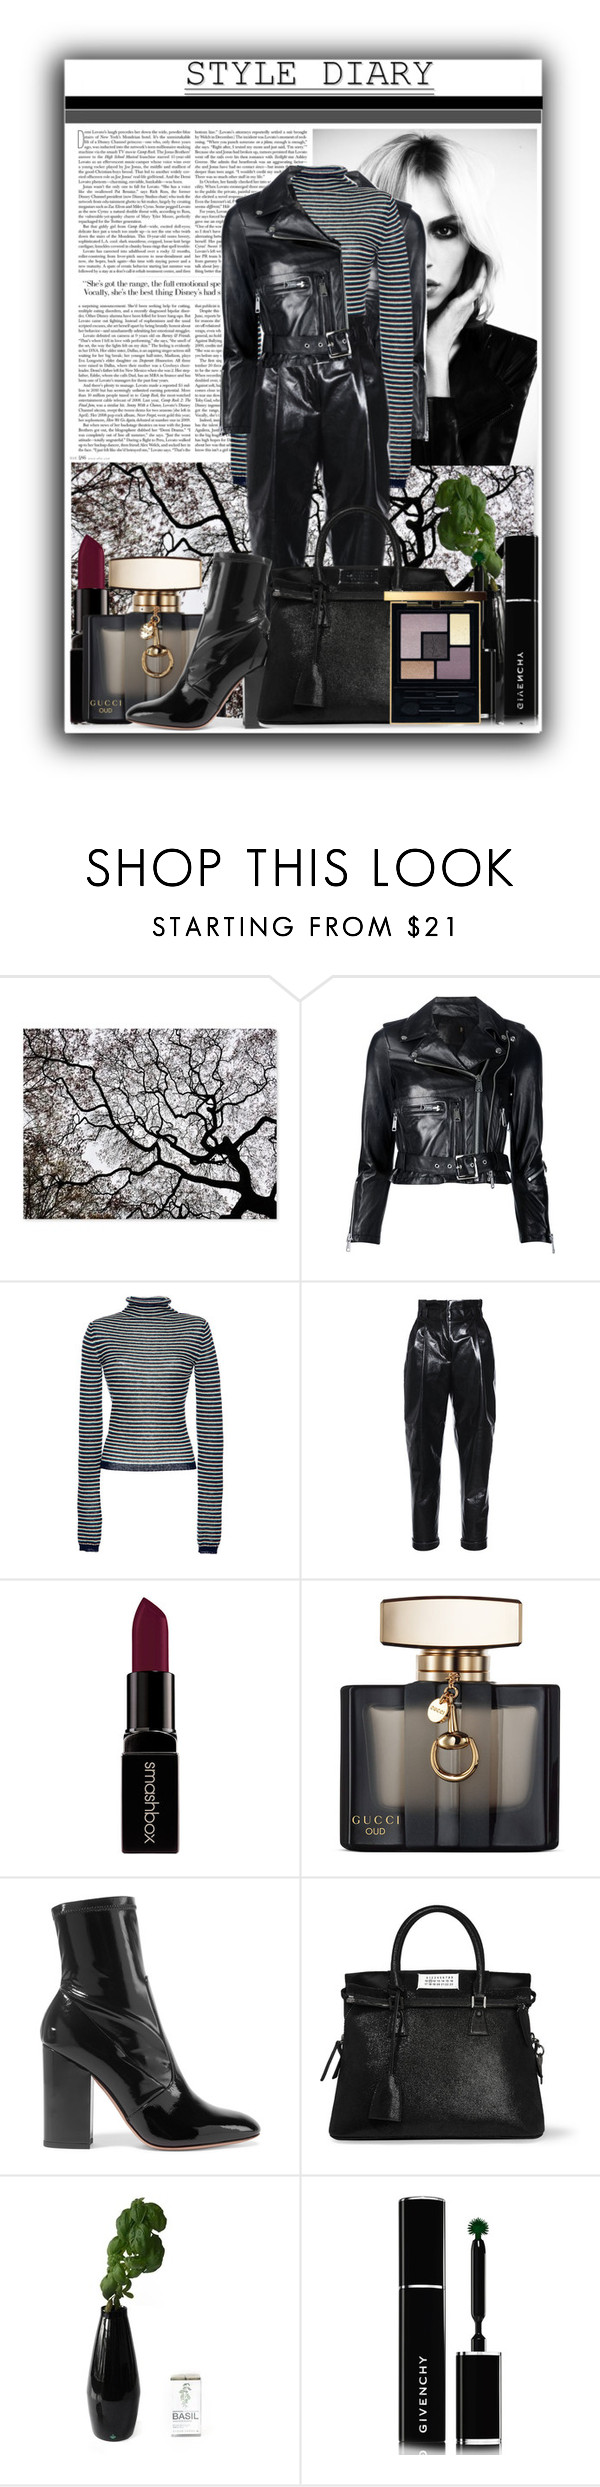 """08.04.16"" by nicolekimlopez24 on Polyvore featuring R13, Etro, Philosophy di Lorenzo Serafini, Smashbox, Gucci, Valentino, Maison Margiela, Givenchy and Yves Saint Laurent"